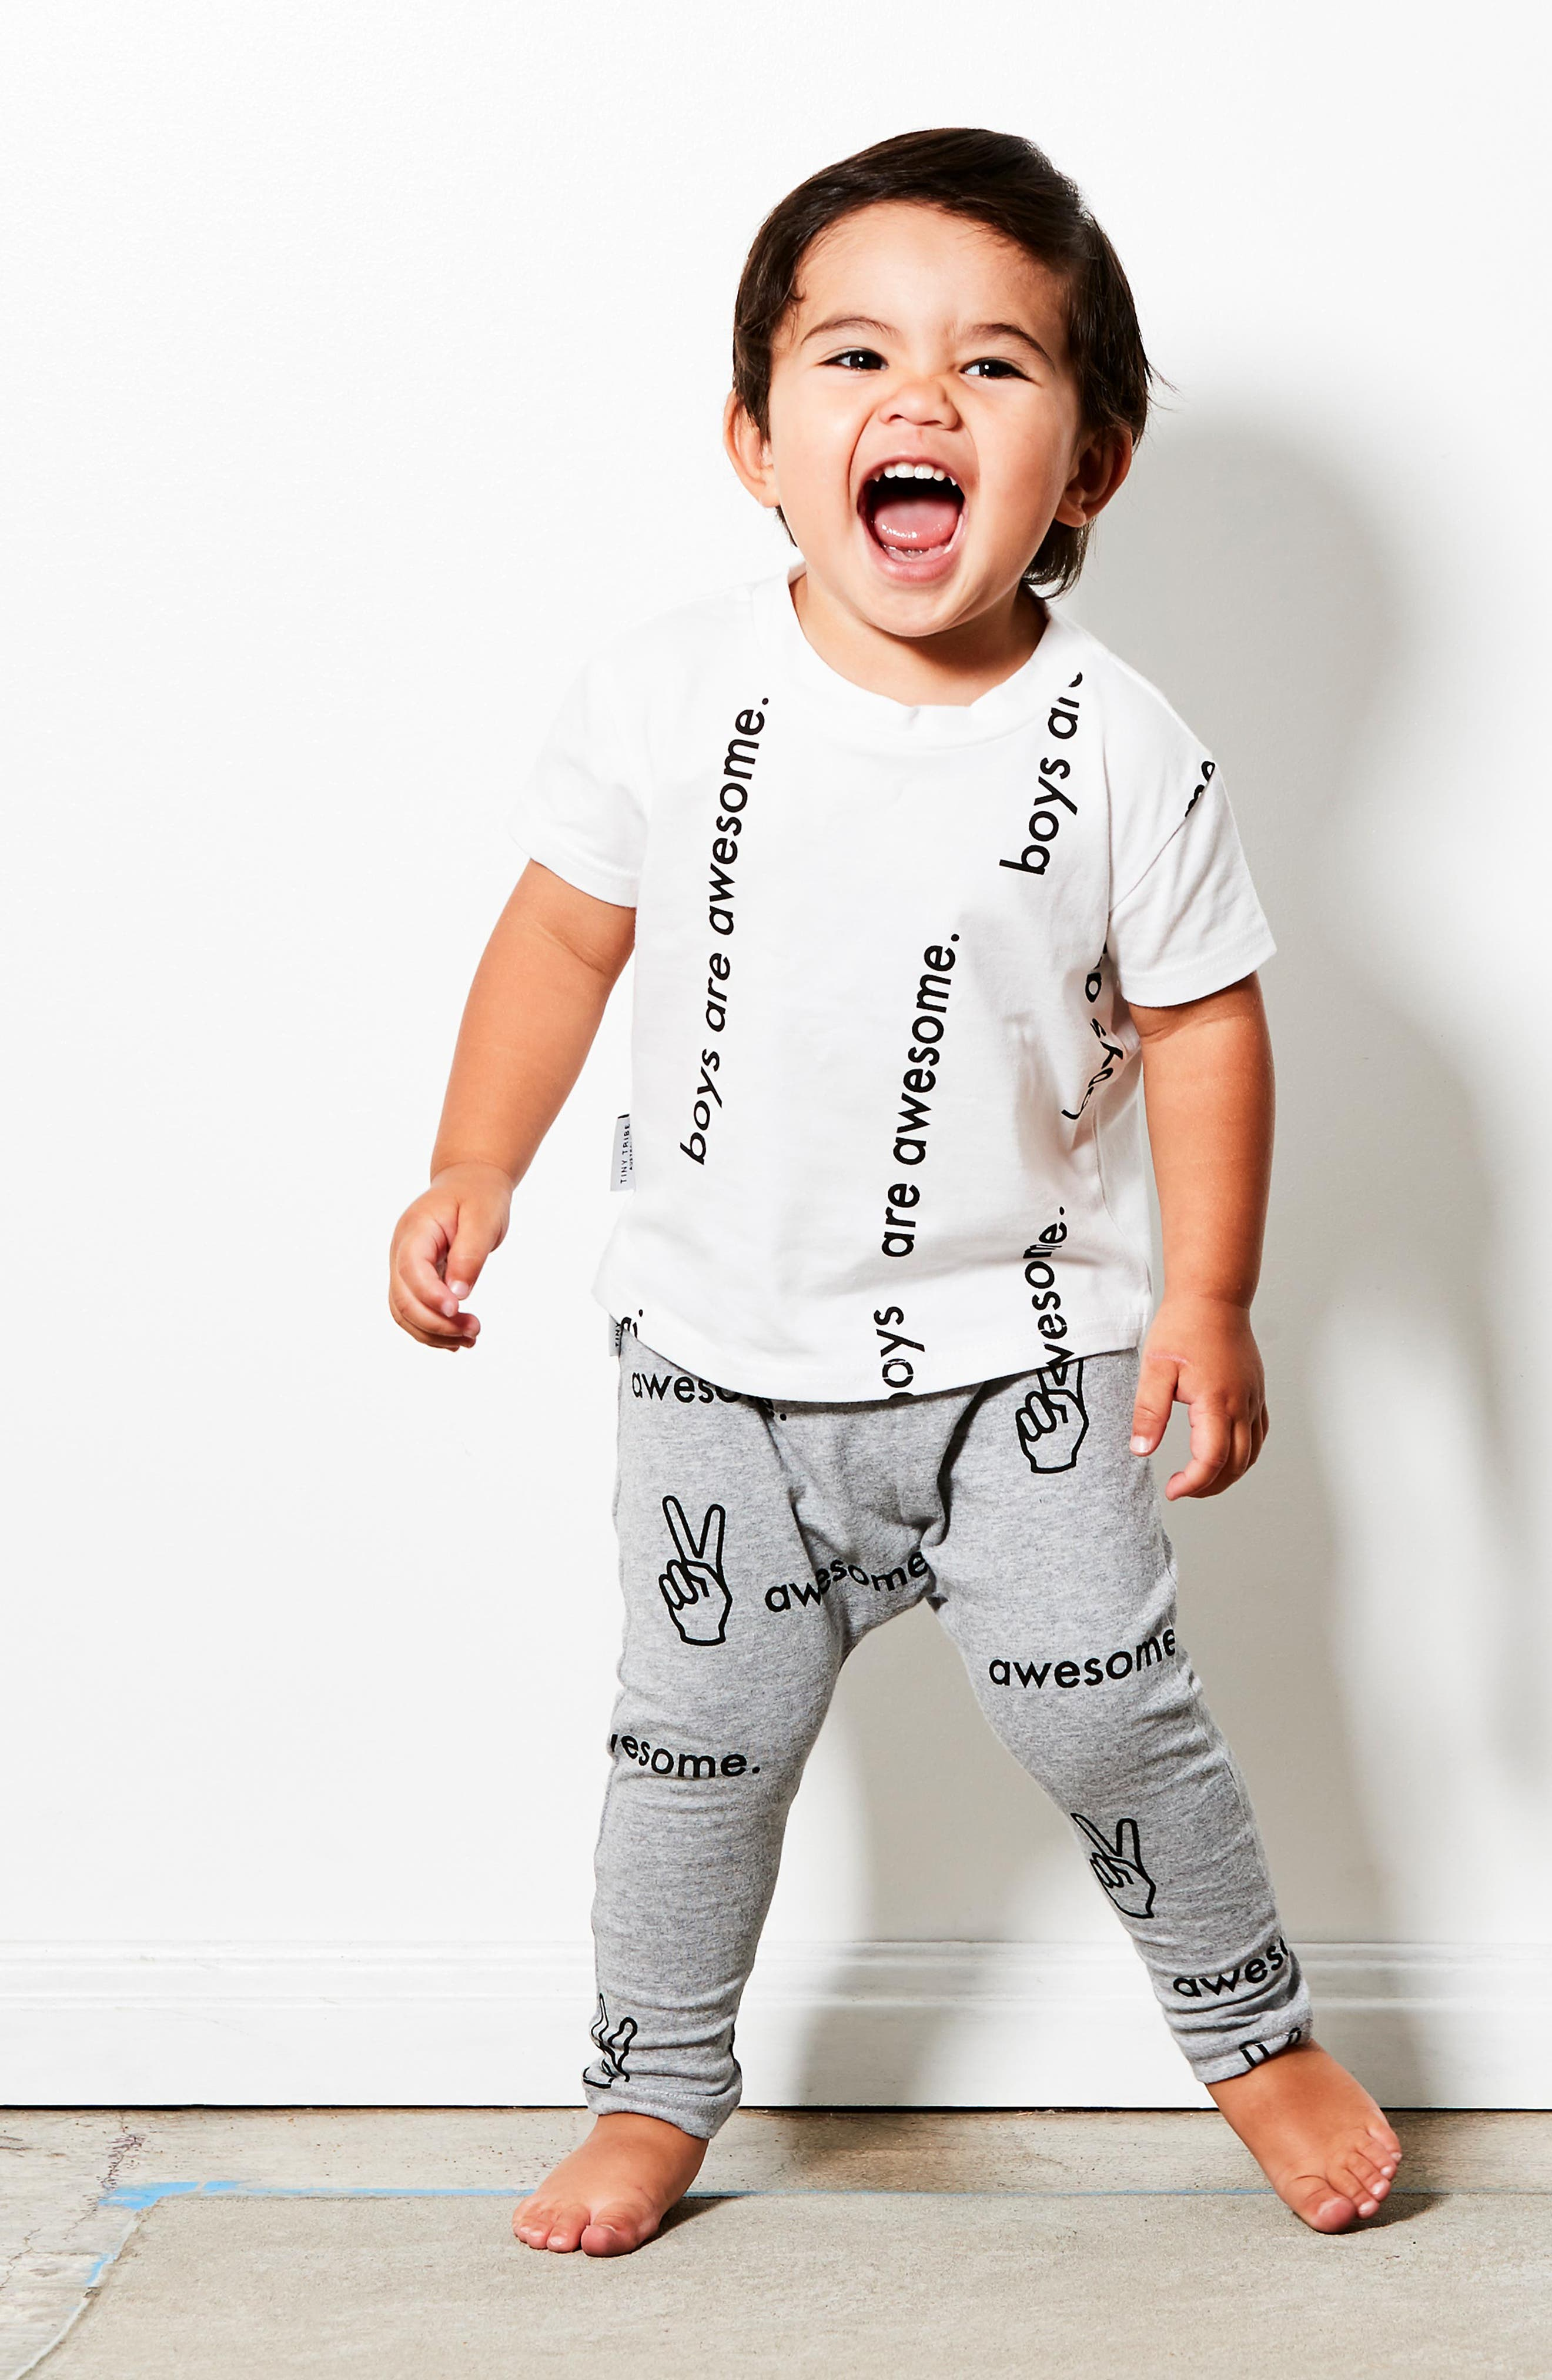 Boys are Awesome Graphic T-Shirt & Pants Set,                             Alternate thumbnail 3, color,                             White/ Grey